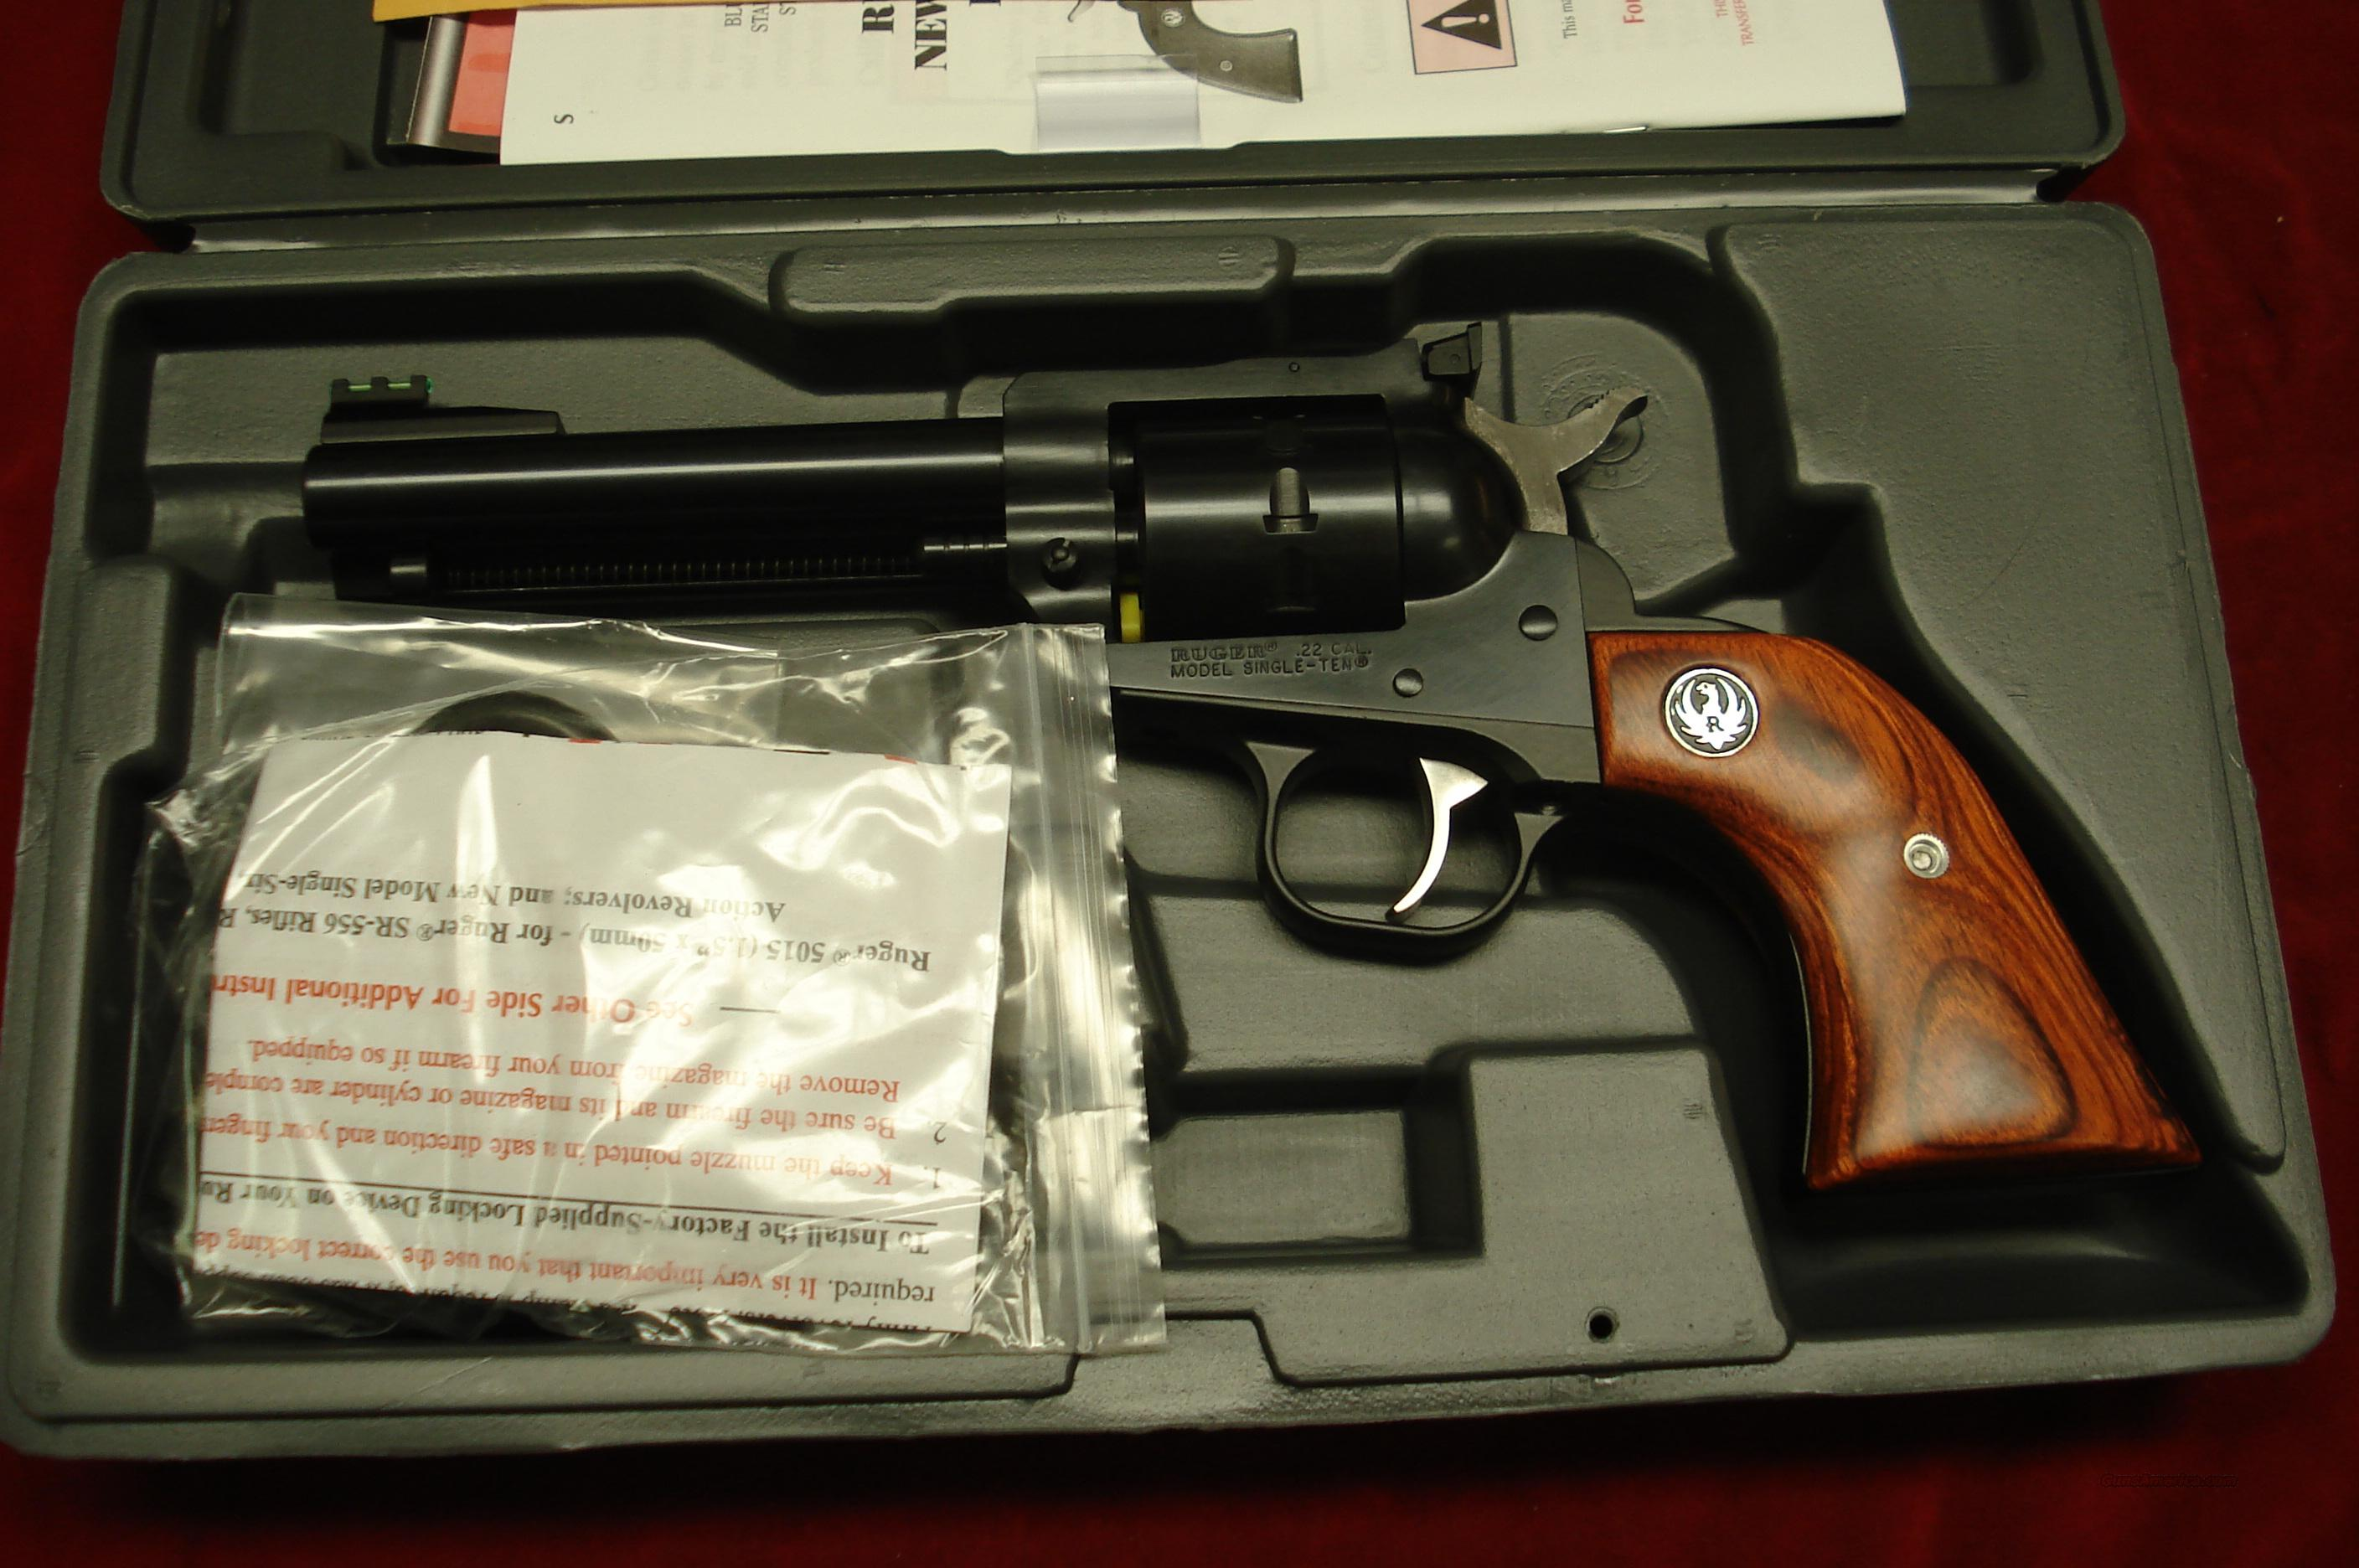 "RUGER SUPER SINGLE TEN 4 5/8"" BLUE 22 CAL. NEW (NR-4L-10)  Guns > Pistols > Ruger Single Action Revolvers > Single Six Type"